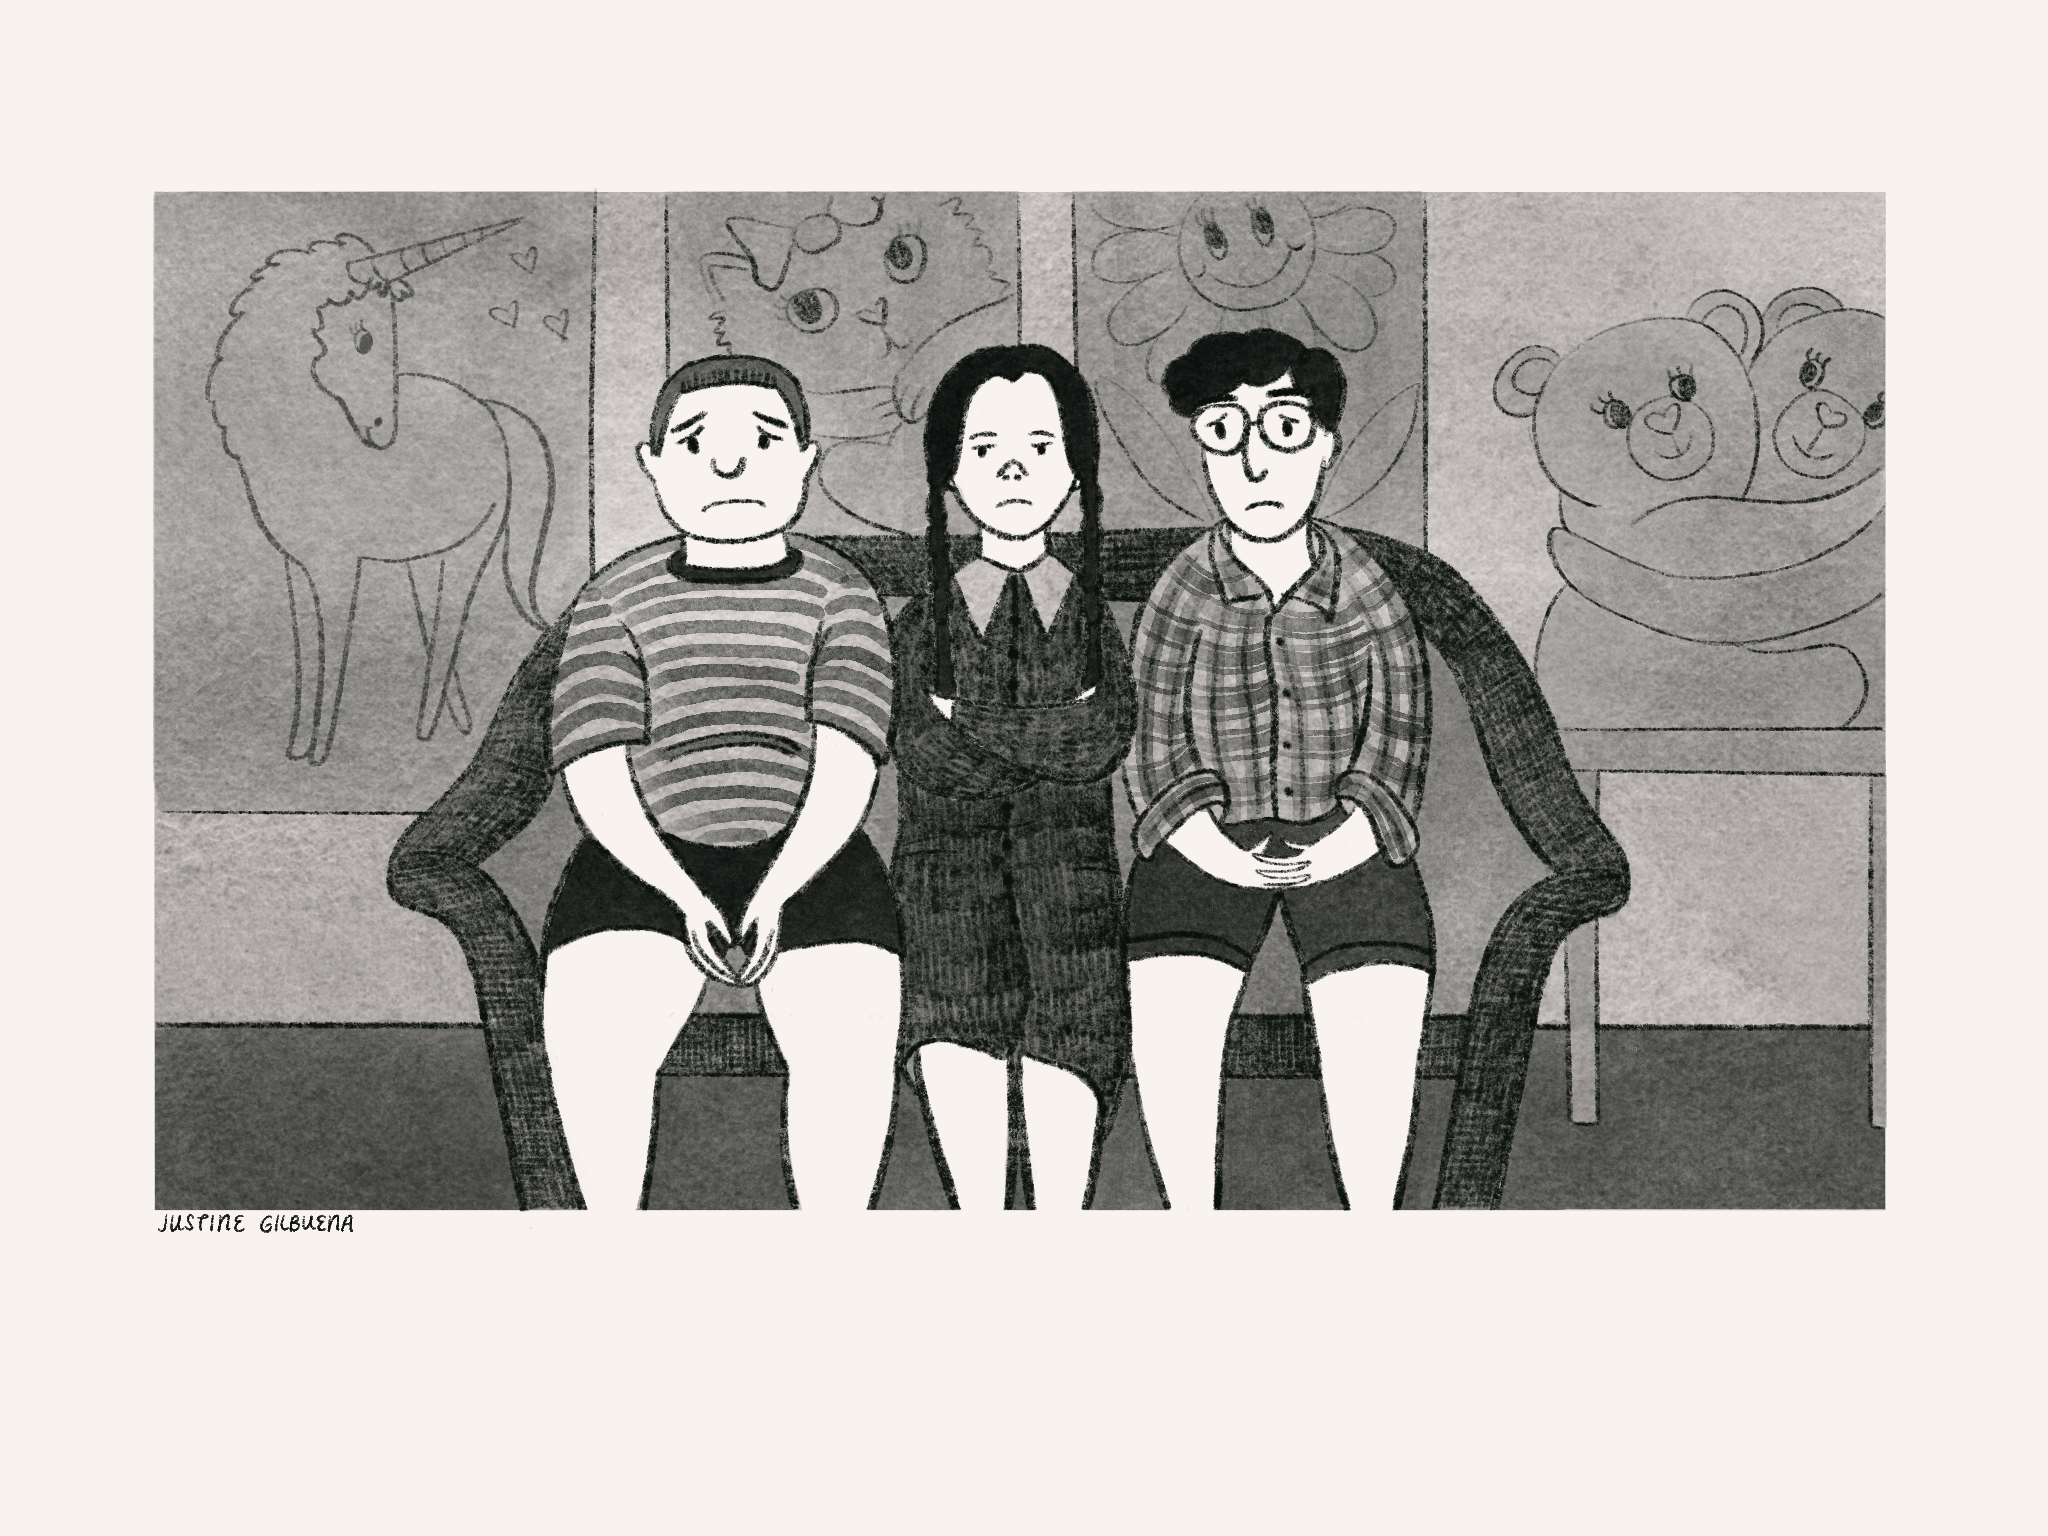 Addams Family Values by Justine Gilbuena.png